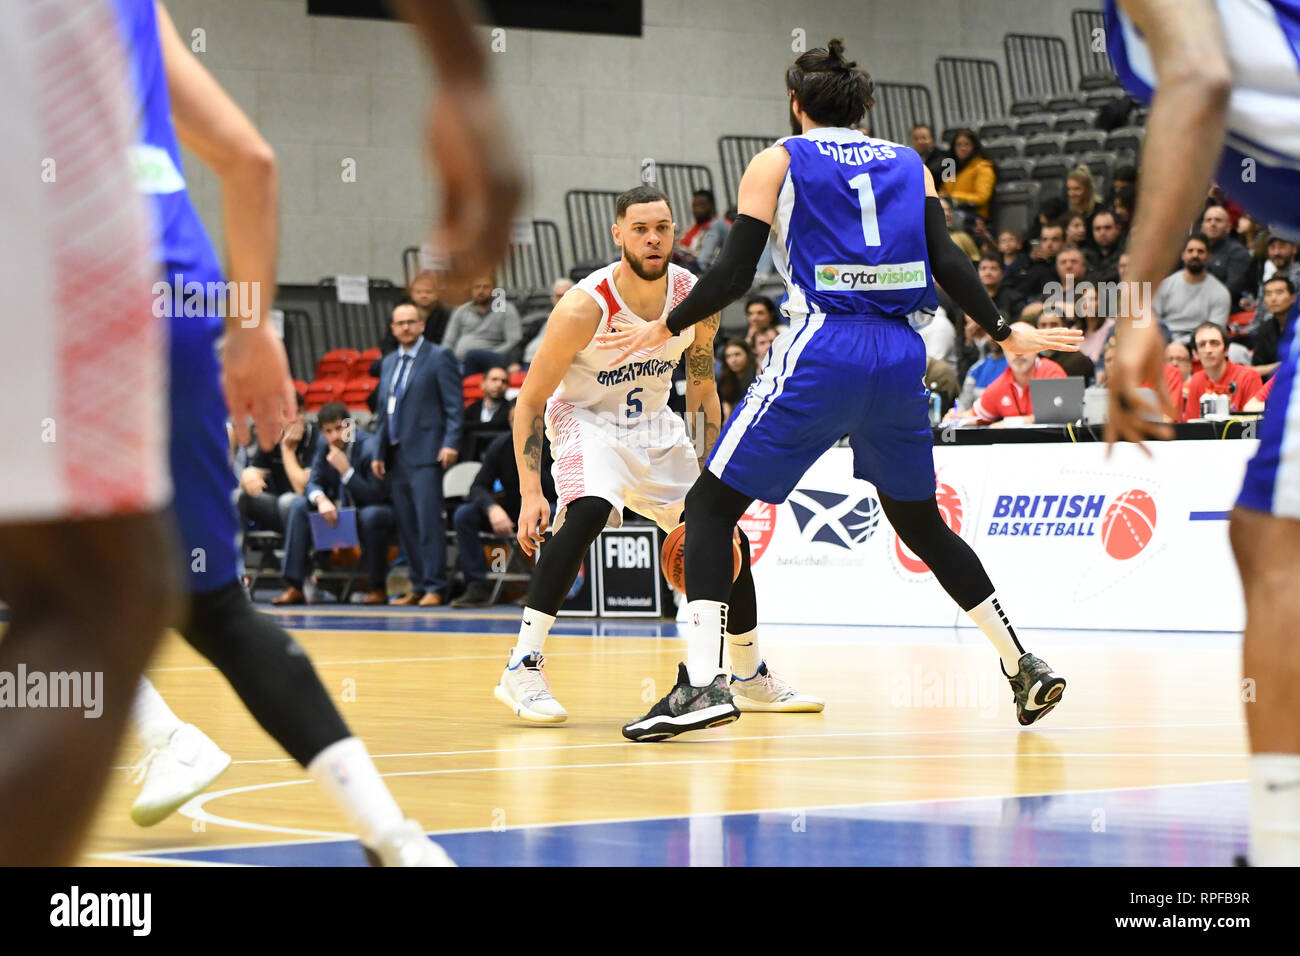 Manchester, UK. 21st Feb, 2019. Team GB Men's Basketball team beat Cyprus 84-47 at the National Basketball Performance Centre, Manchester, UK. Credit: JS Sport Photography/Alamy Live News - Stock Image